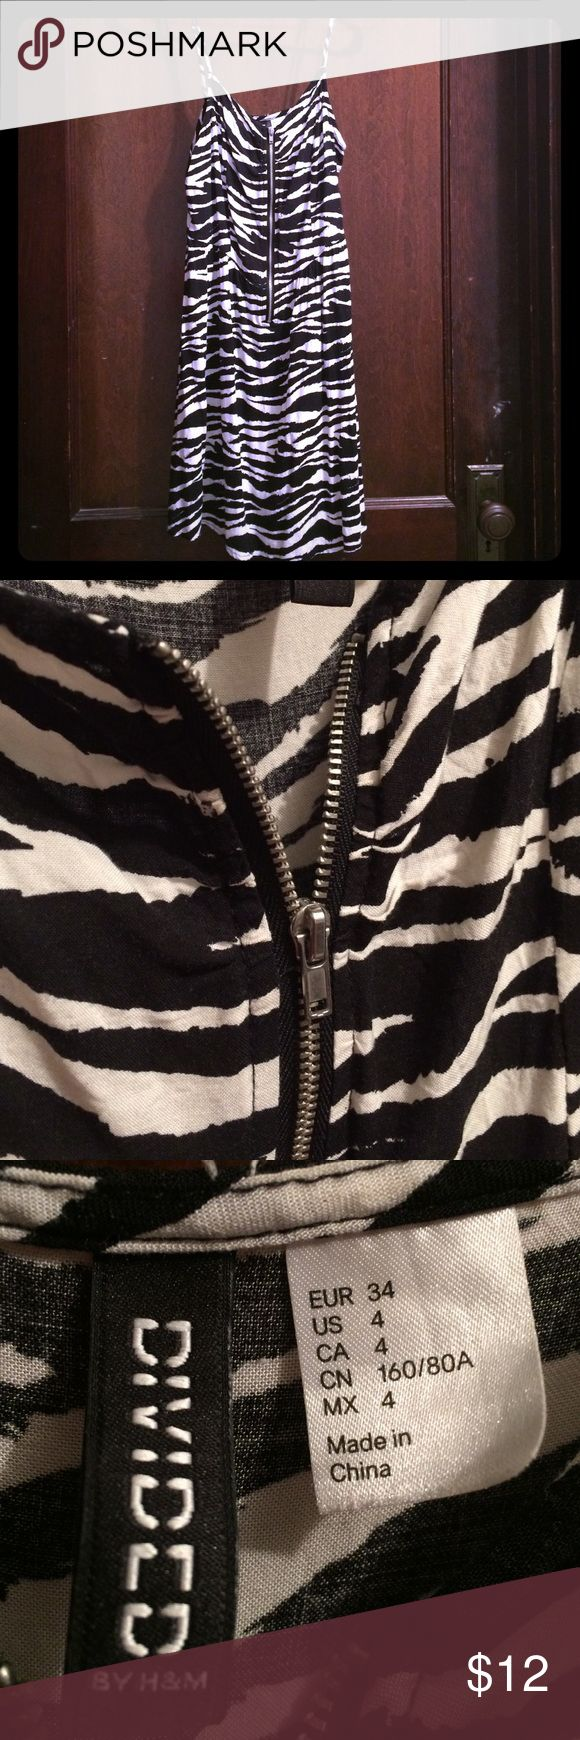 Cute zebra print dress from H&M Zebra print with zippered front. Fitted to waist then flares slightly from the hips. Adjustable straps. Comfortable, flattering shape. Brand is Divided from H&M. H&M Dresses